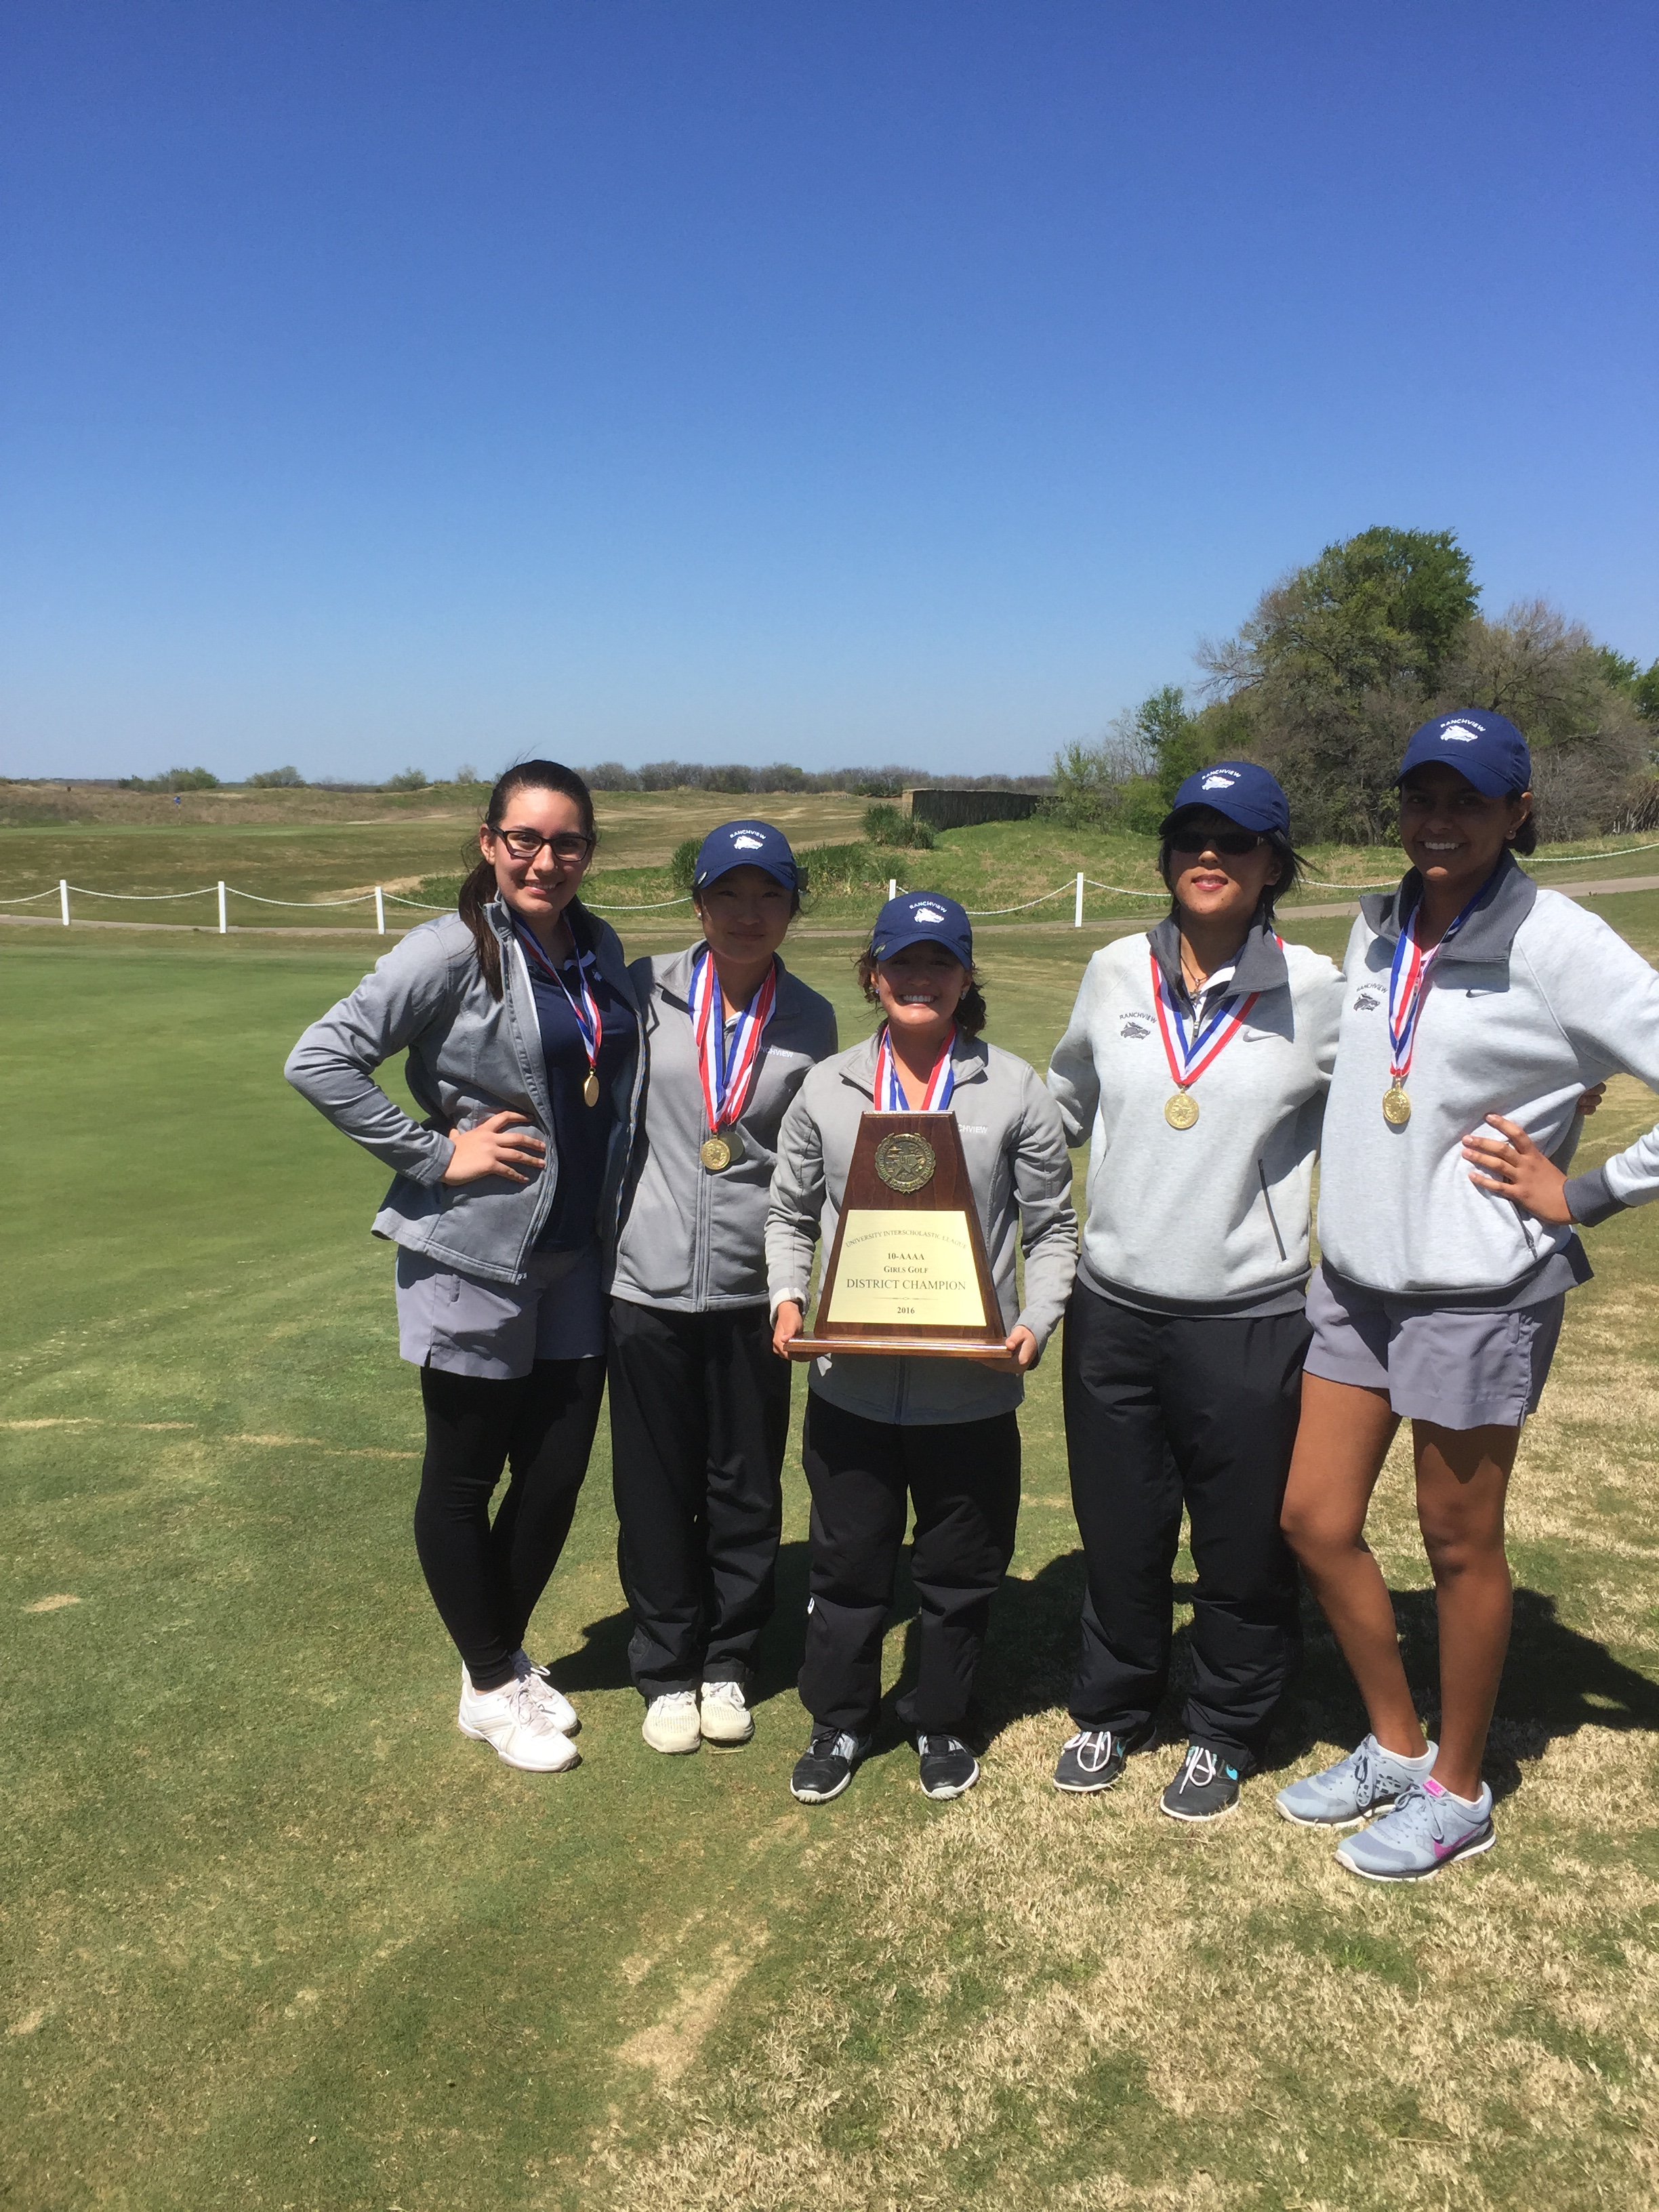 Girls Golf team with medals and holding a trophy